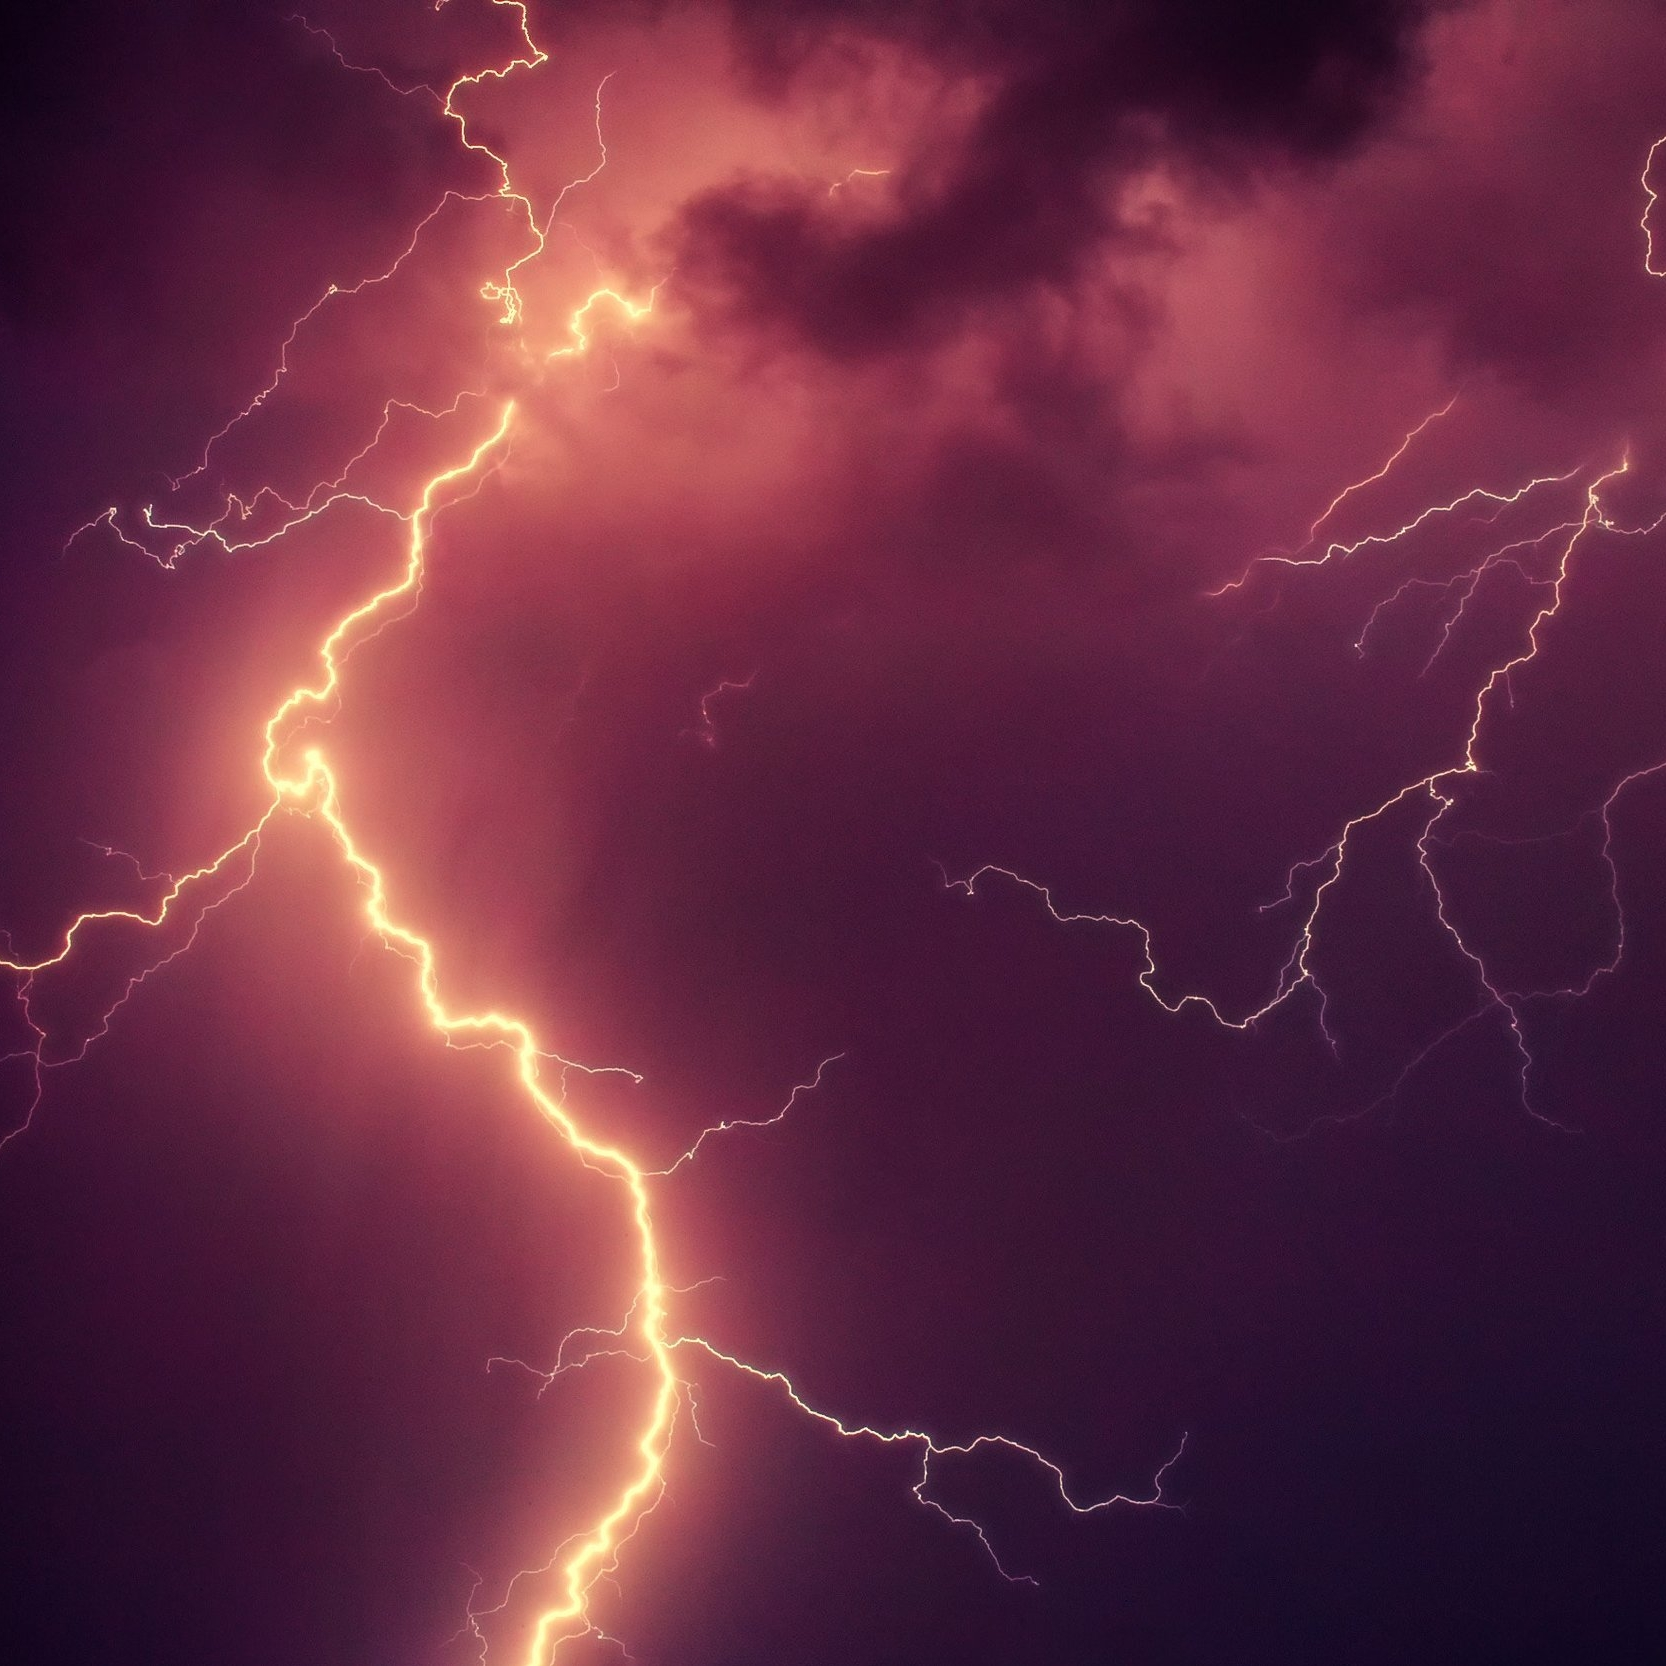 clouds-dark-lightning-1118869.jpg